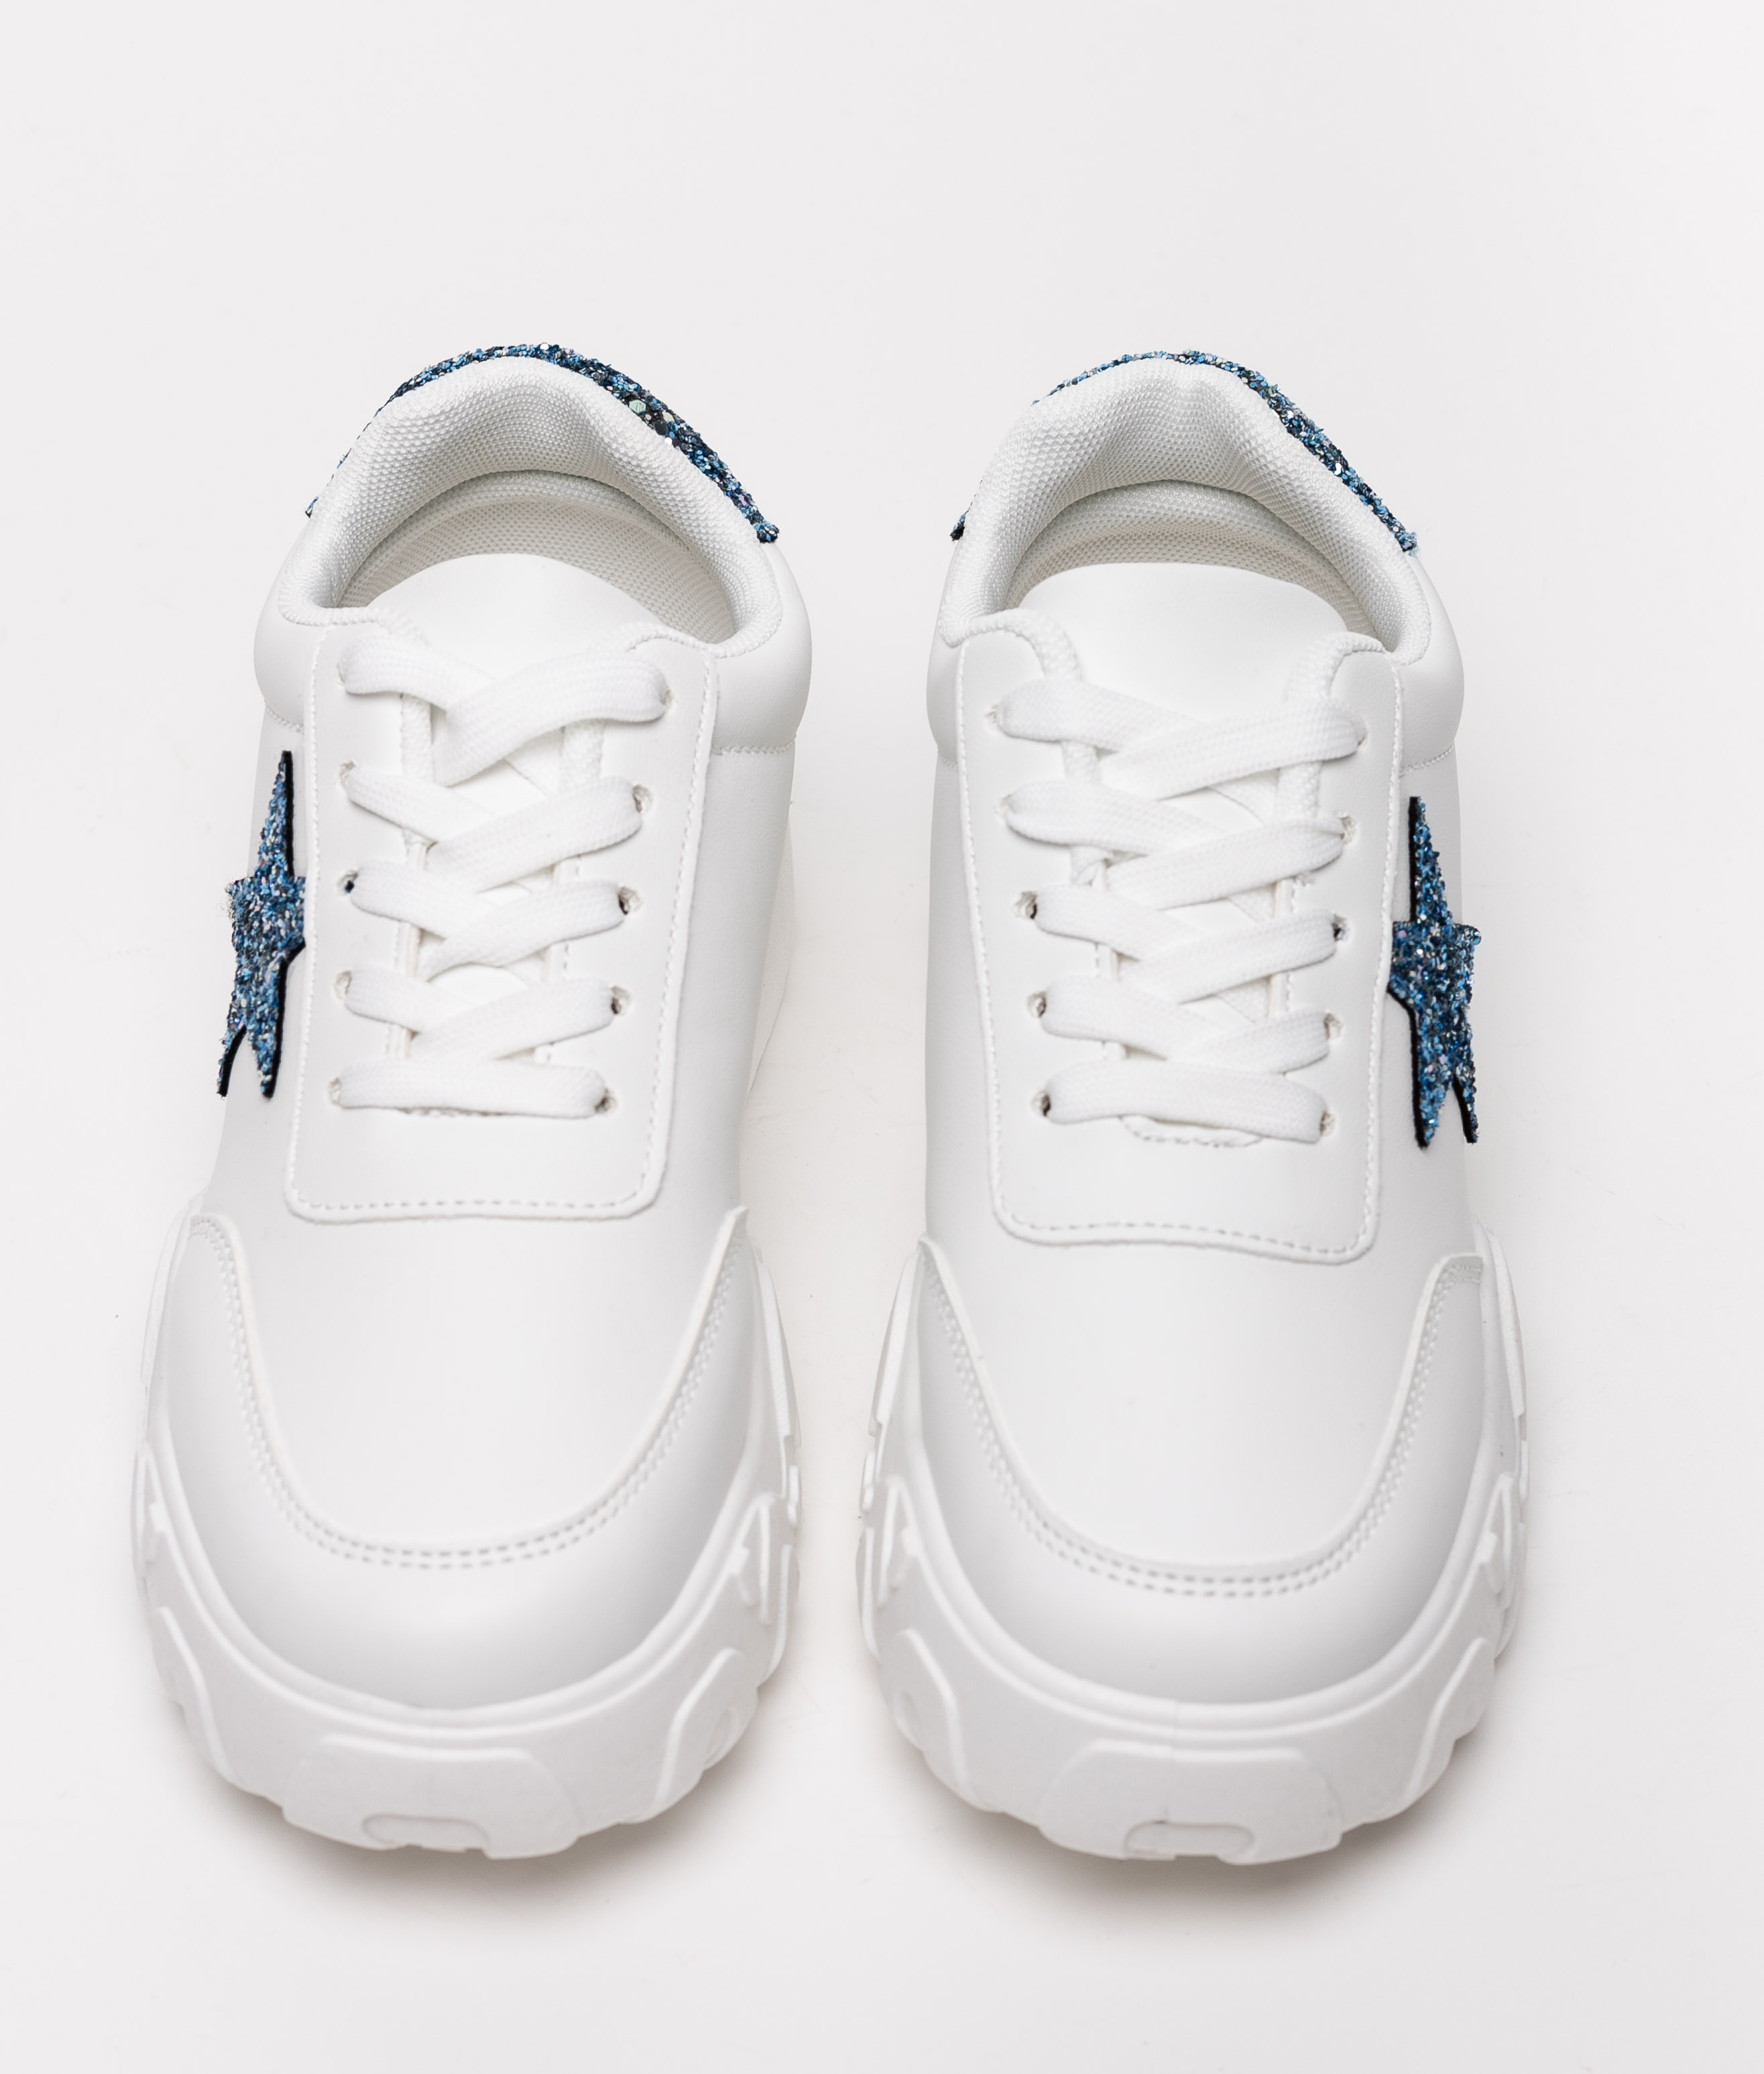 SNEAKERS LUPIS - BLUE